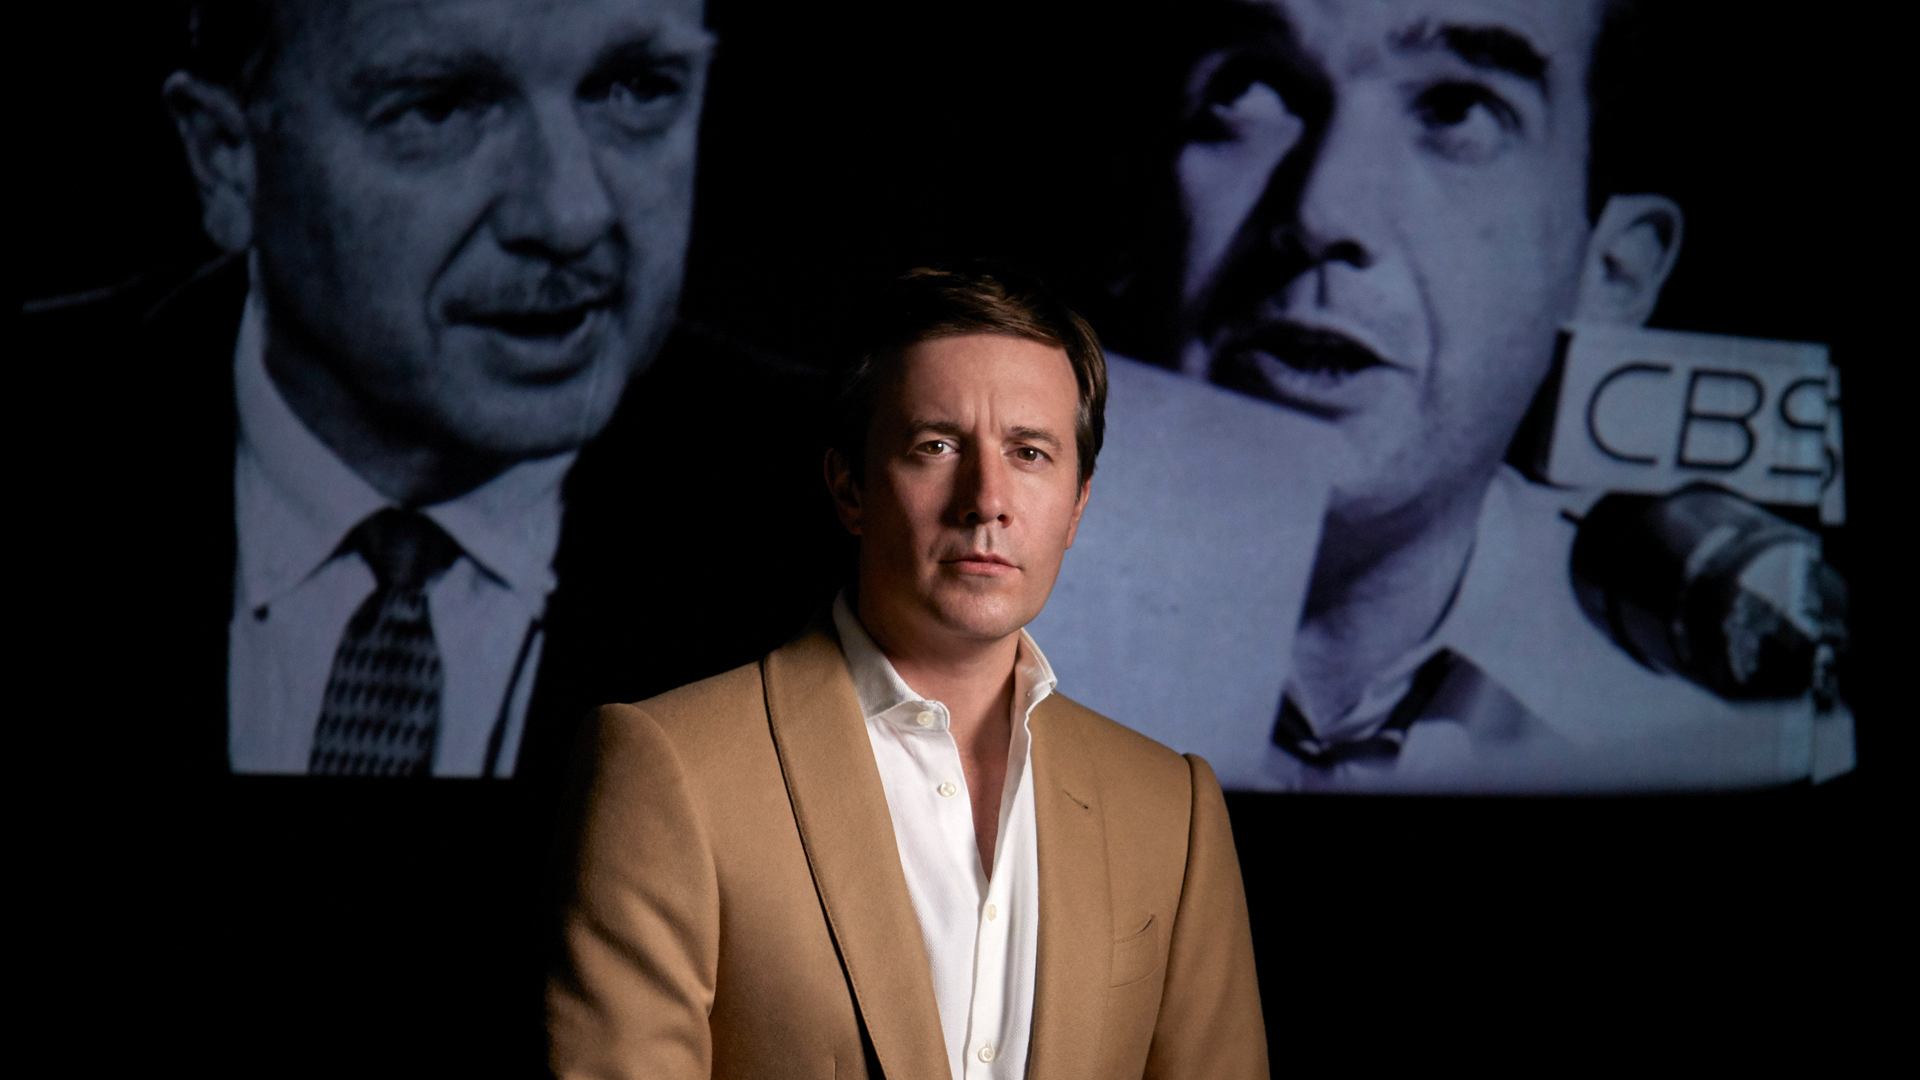 Jeff Glor, the new face of CBS Evening News